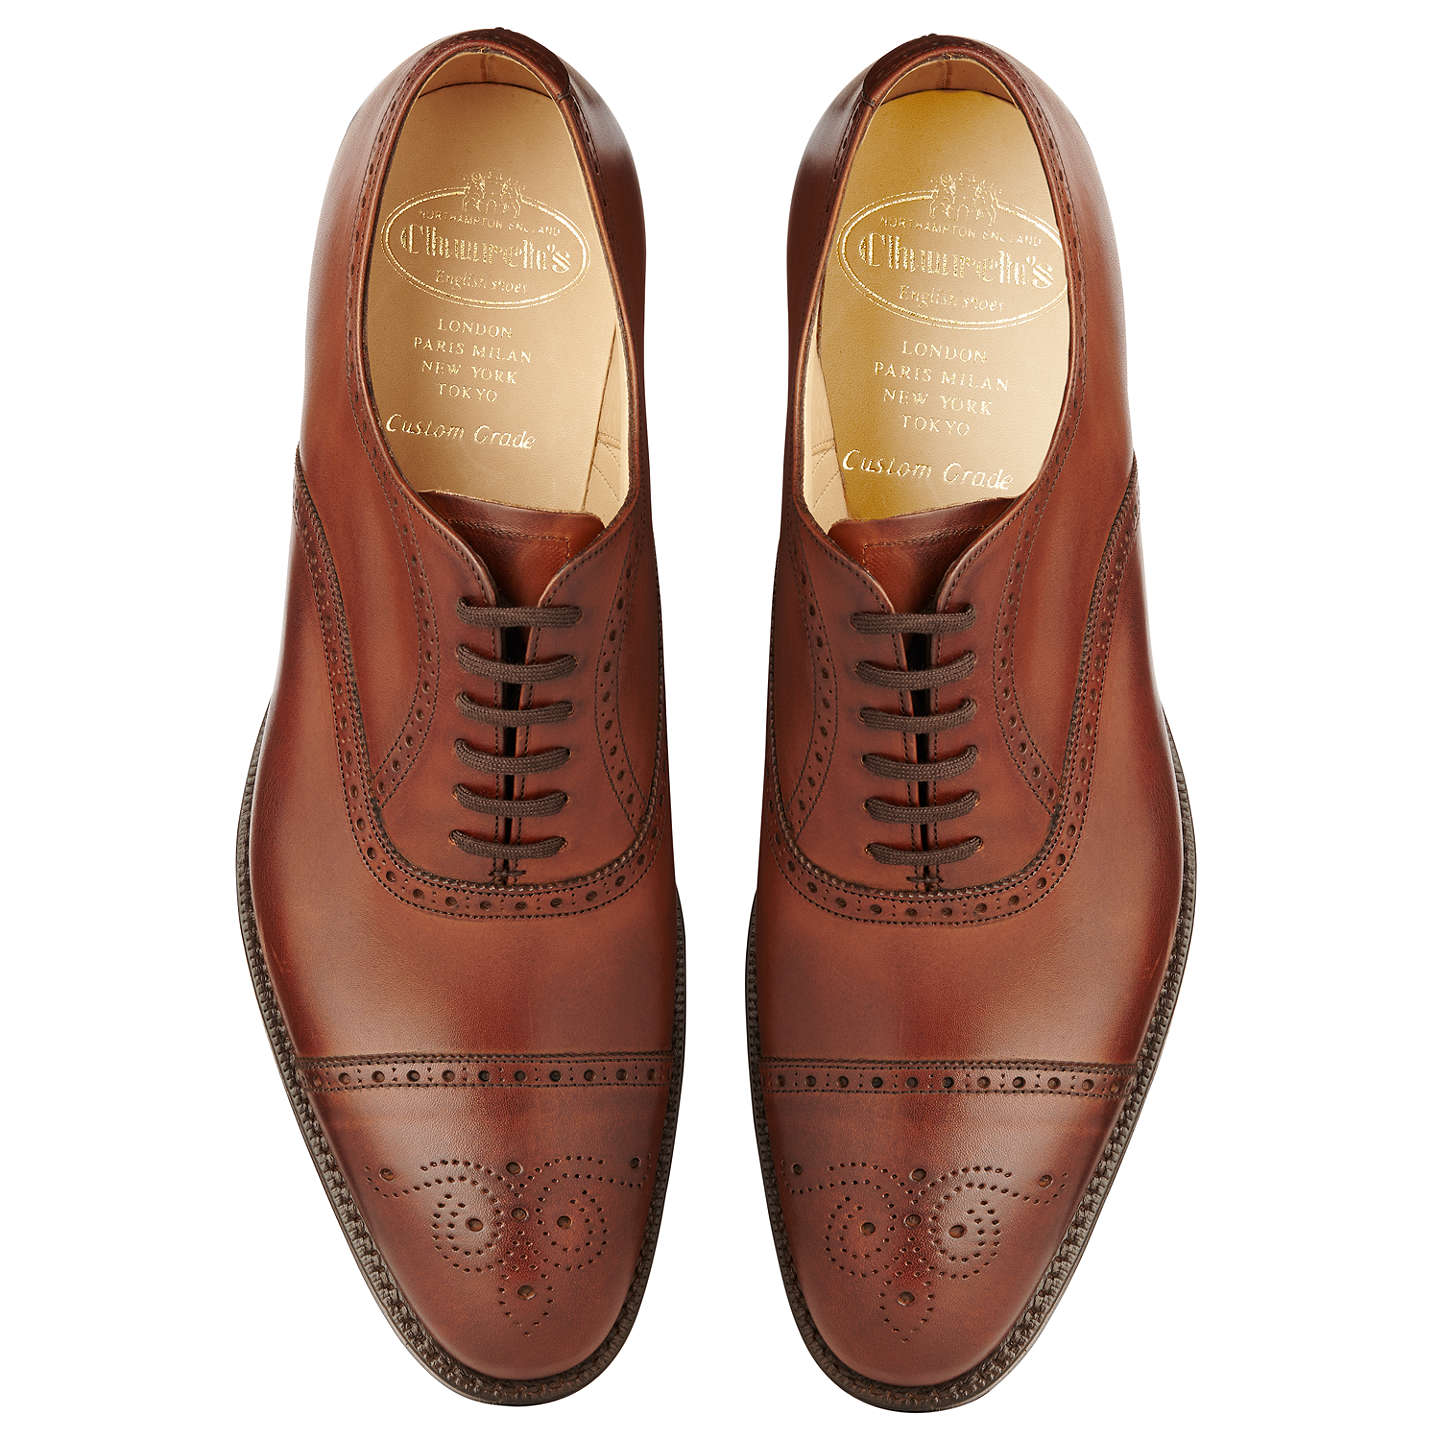 John Lewis Mens Shoes Brogues